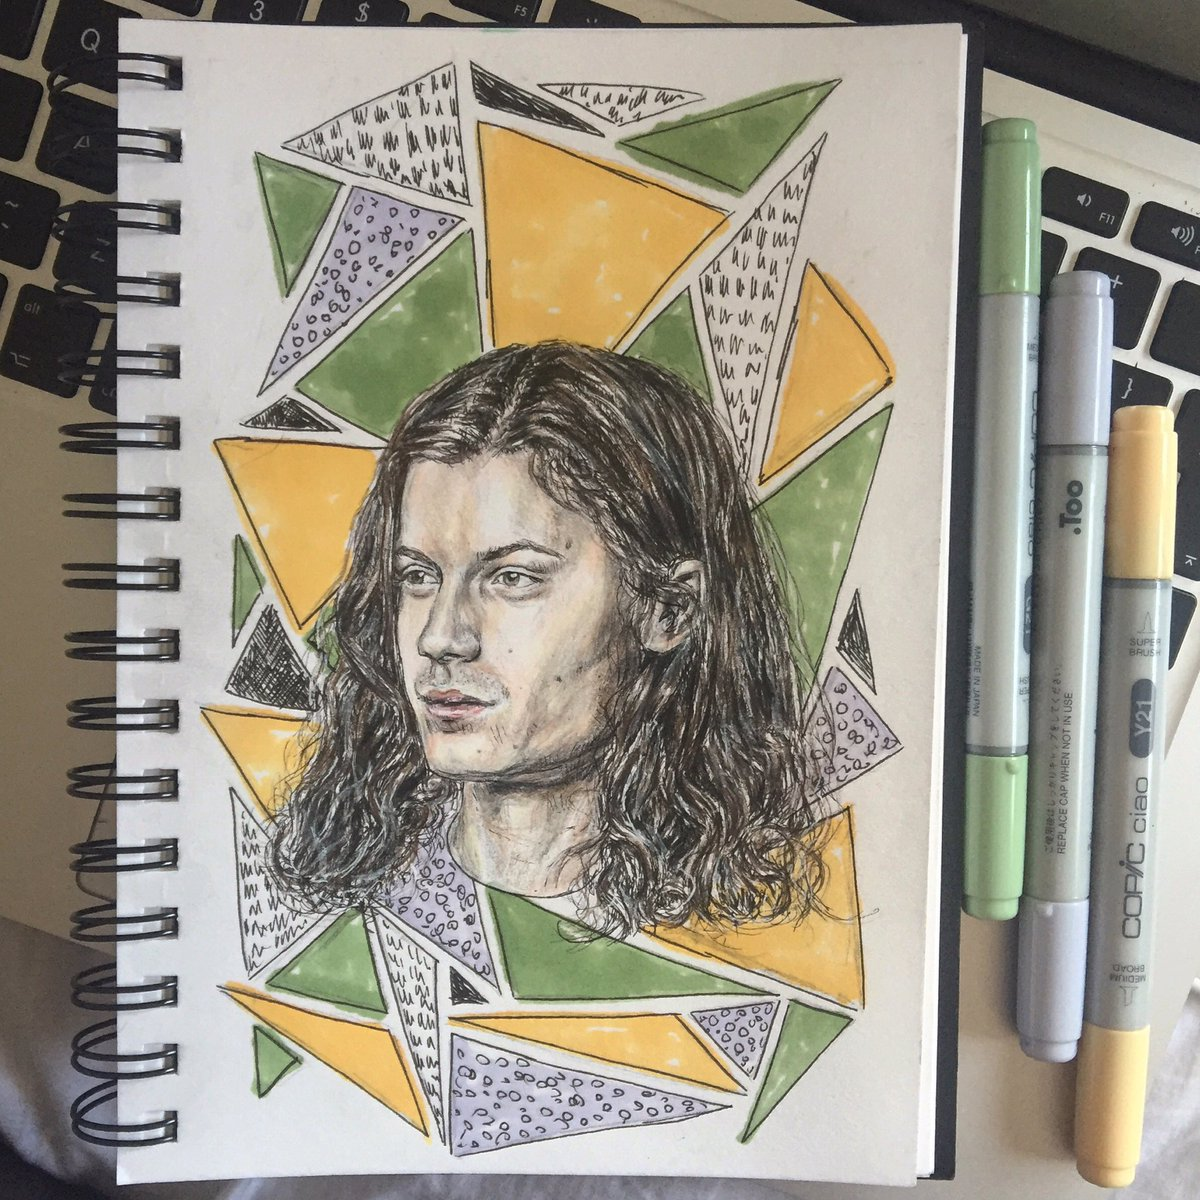 obsessed w/ @bornsmusic right now so had to do some art  somewhat resembles harry styles though, i did not want this https://t.co/VO6UQzZhgU